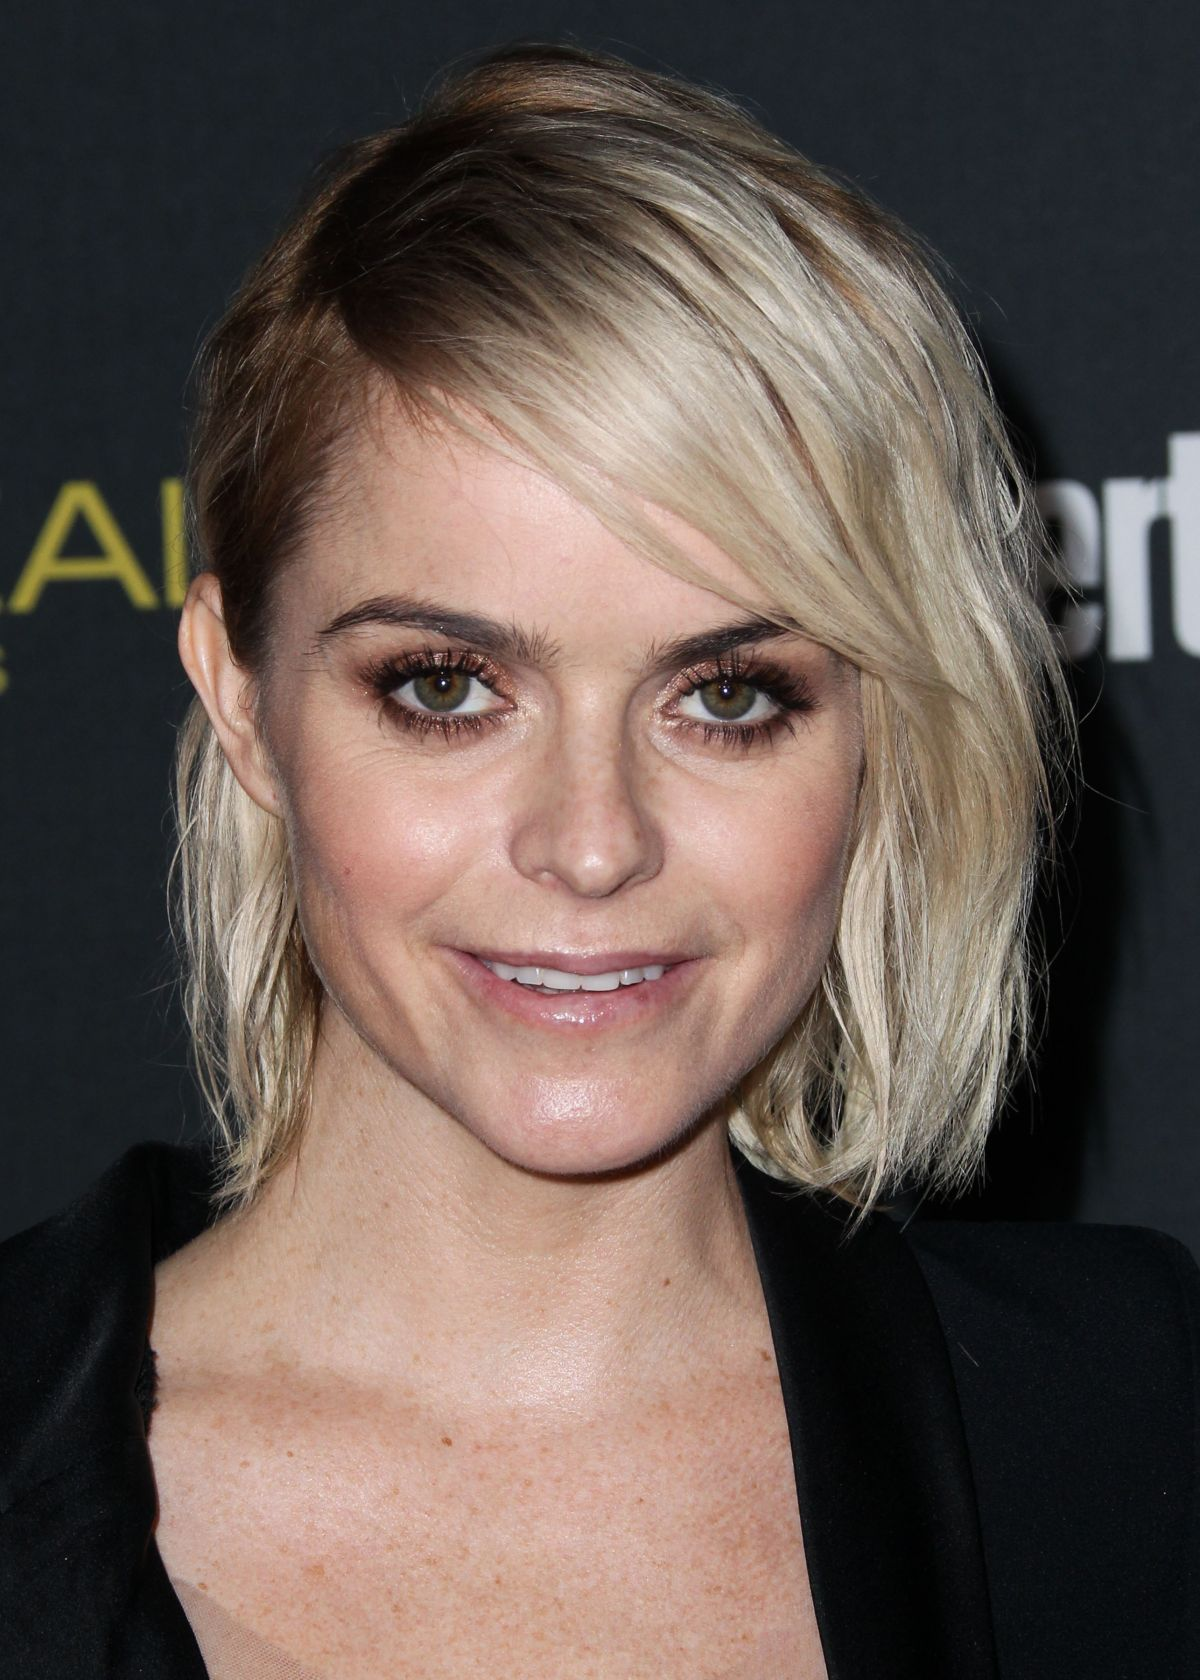 TARYN MANNING at Entertainment Weekly's Pre-emmy Party ...